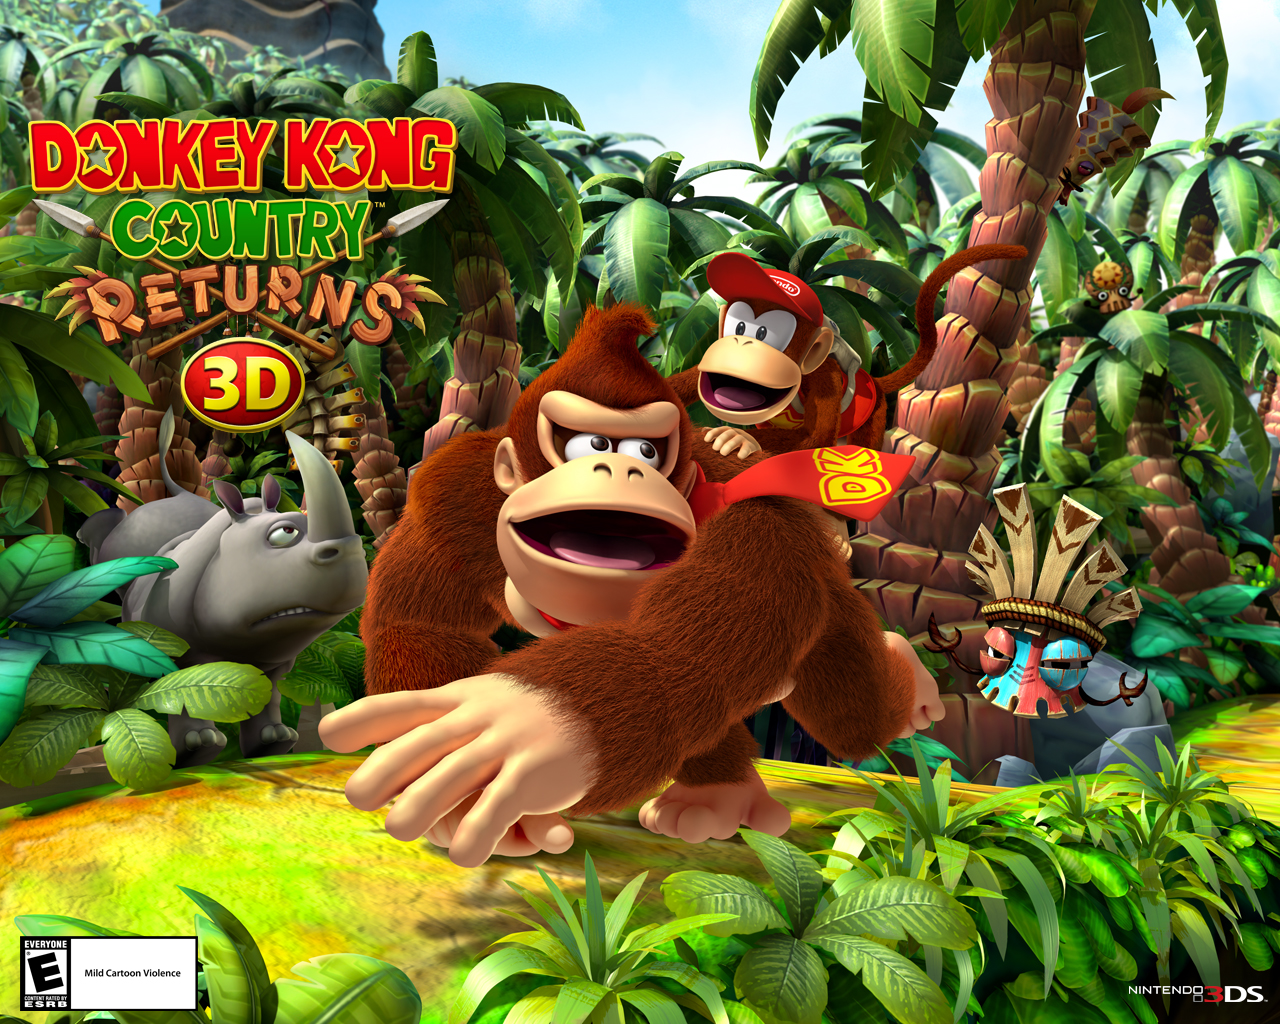 3d Wallpapers Buy Online Wallpapers Donkey Kong Country Returns 3d For Nintendo 3ds